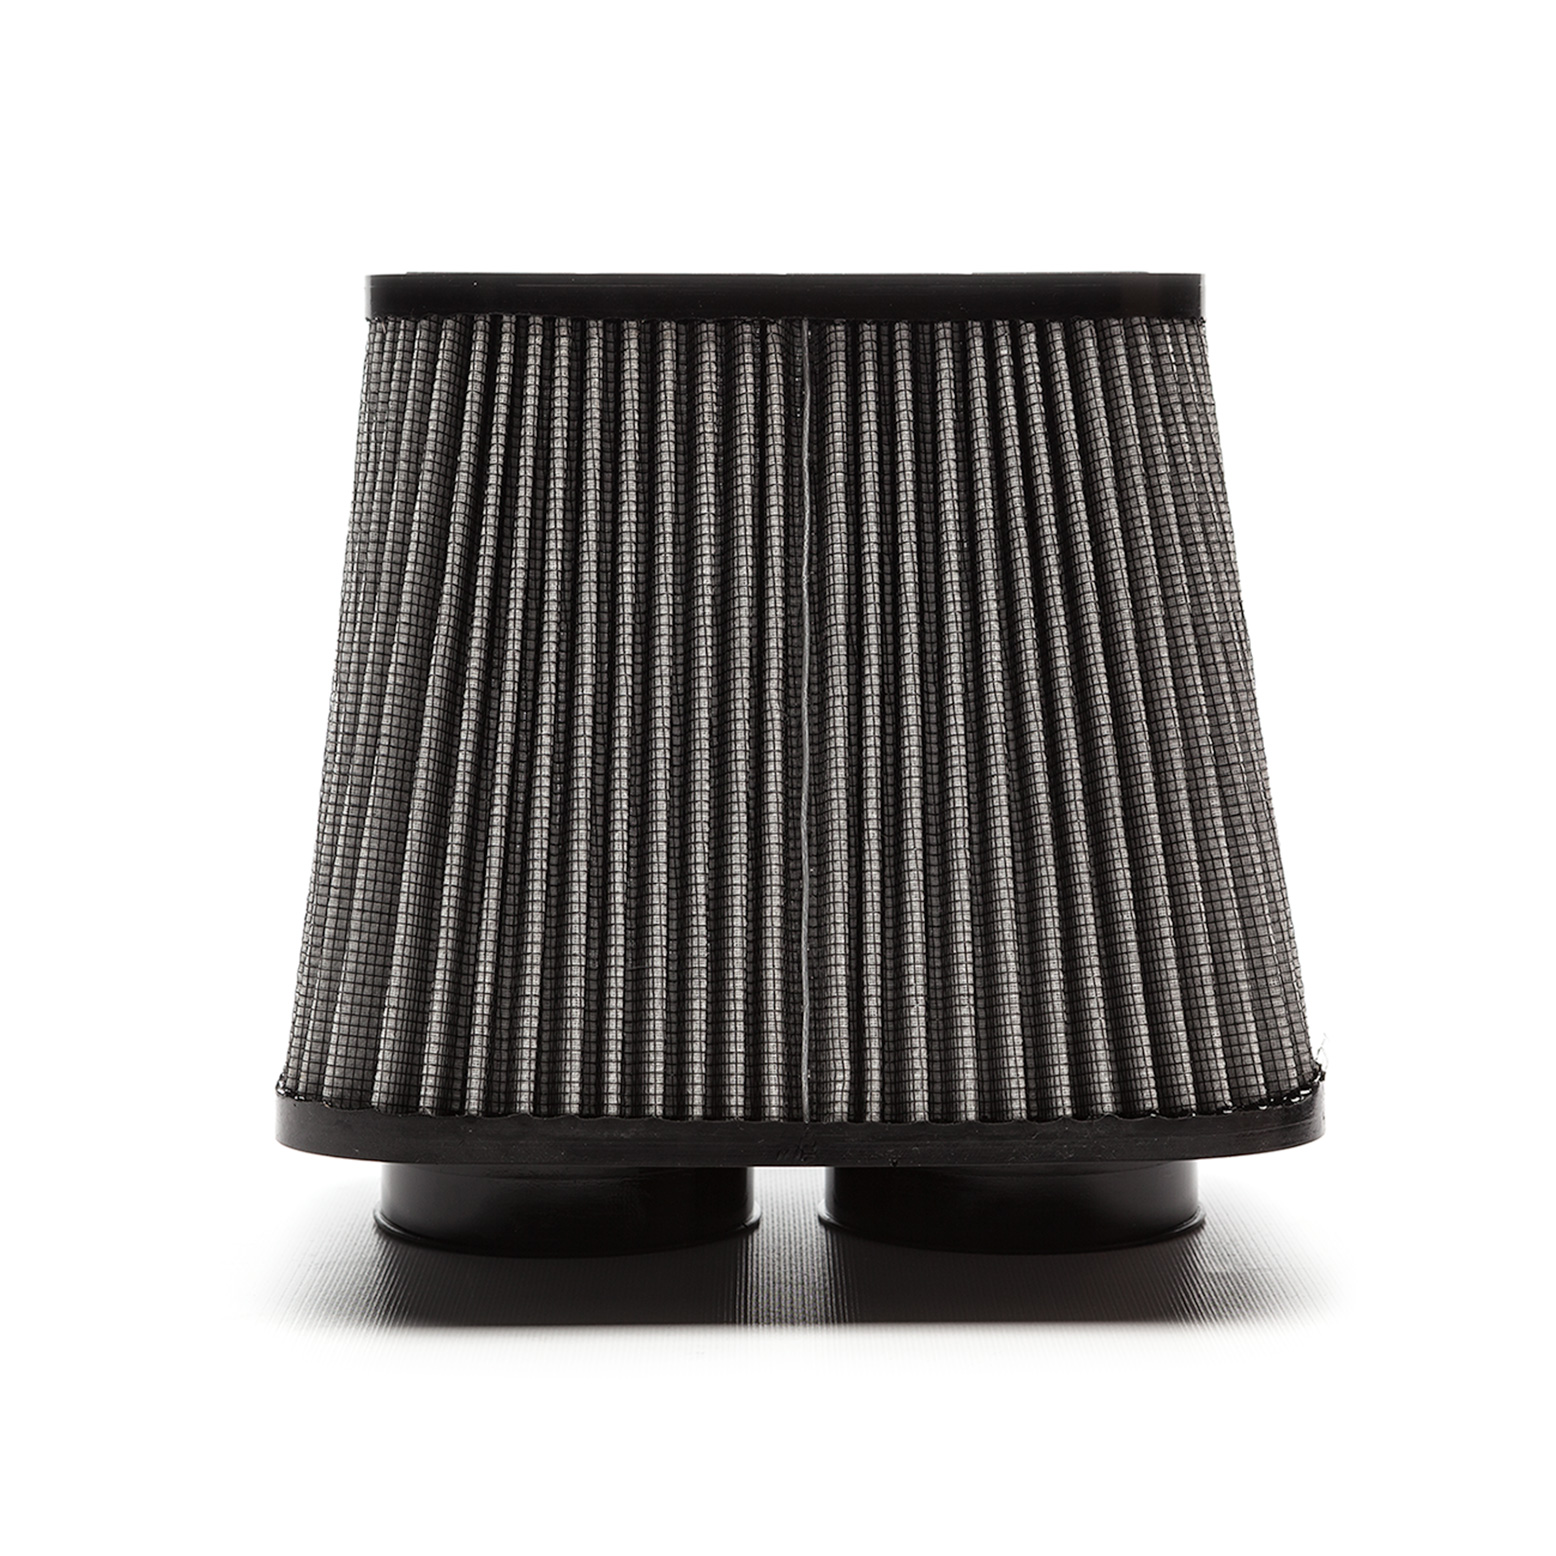 Ford Intake Replacement Filter F-150 EcoBoost 3.5L / Raptor 2017-2019, 2.7L 2018-2019